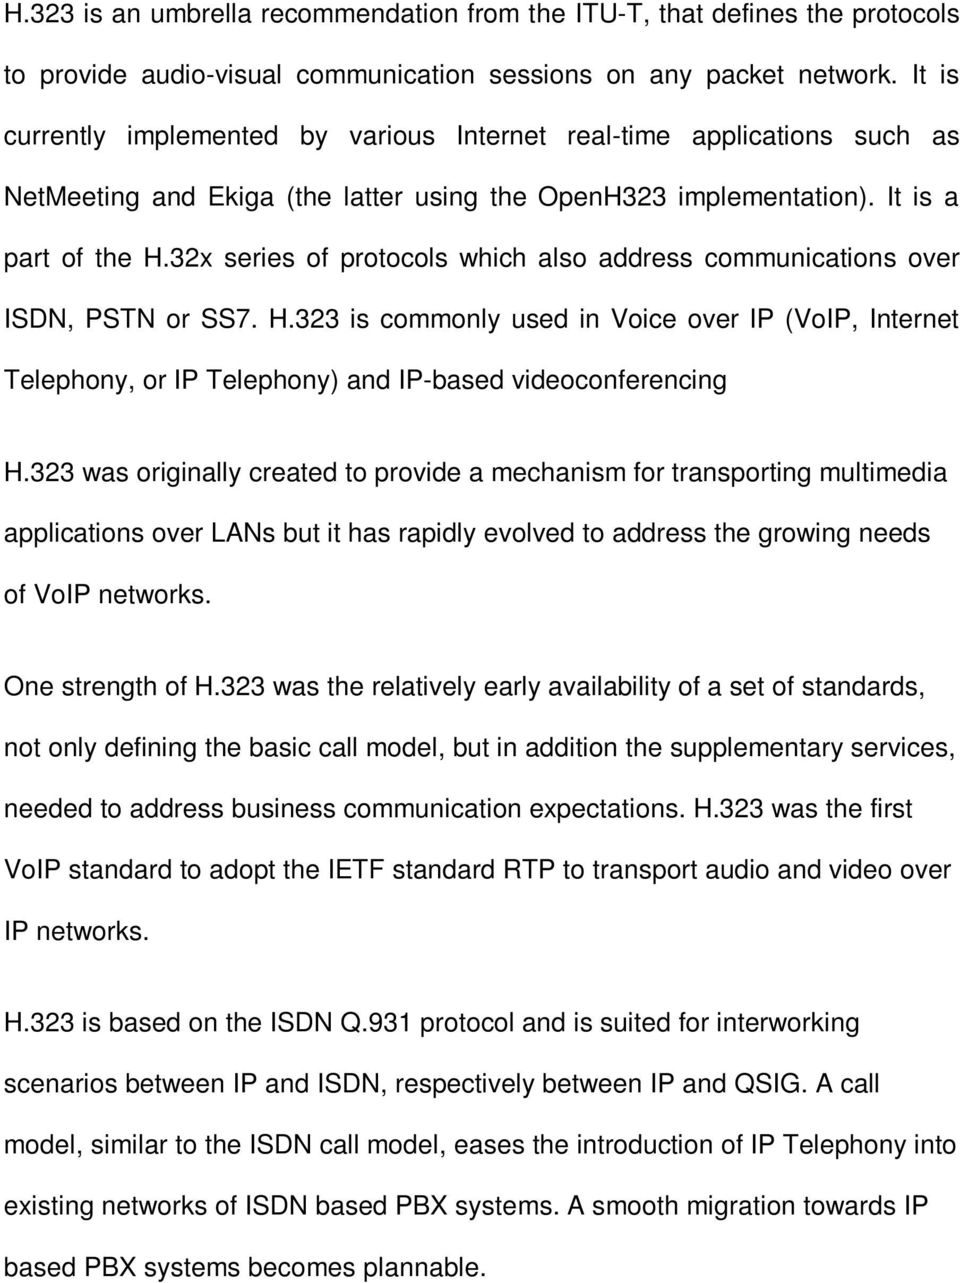 32x series of protocols which also address communications over ISDN, PSTN or SS7. H.323 is commonly used in Voice over IP (VoIP, Internet Telephony, or IP Telephony) and IP-based videoconferencing H.